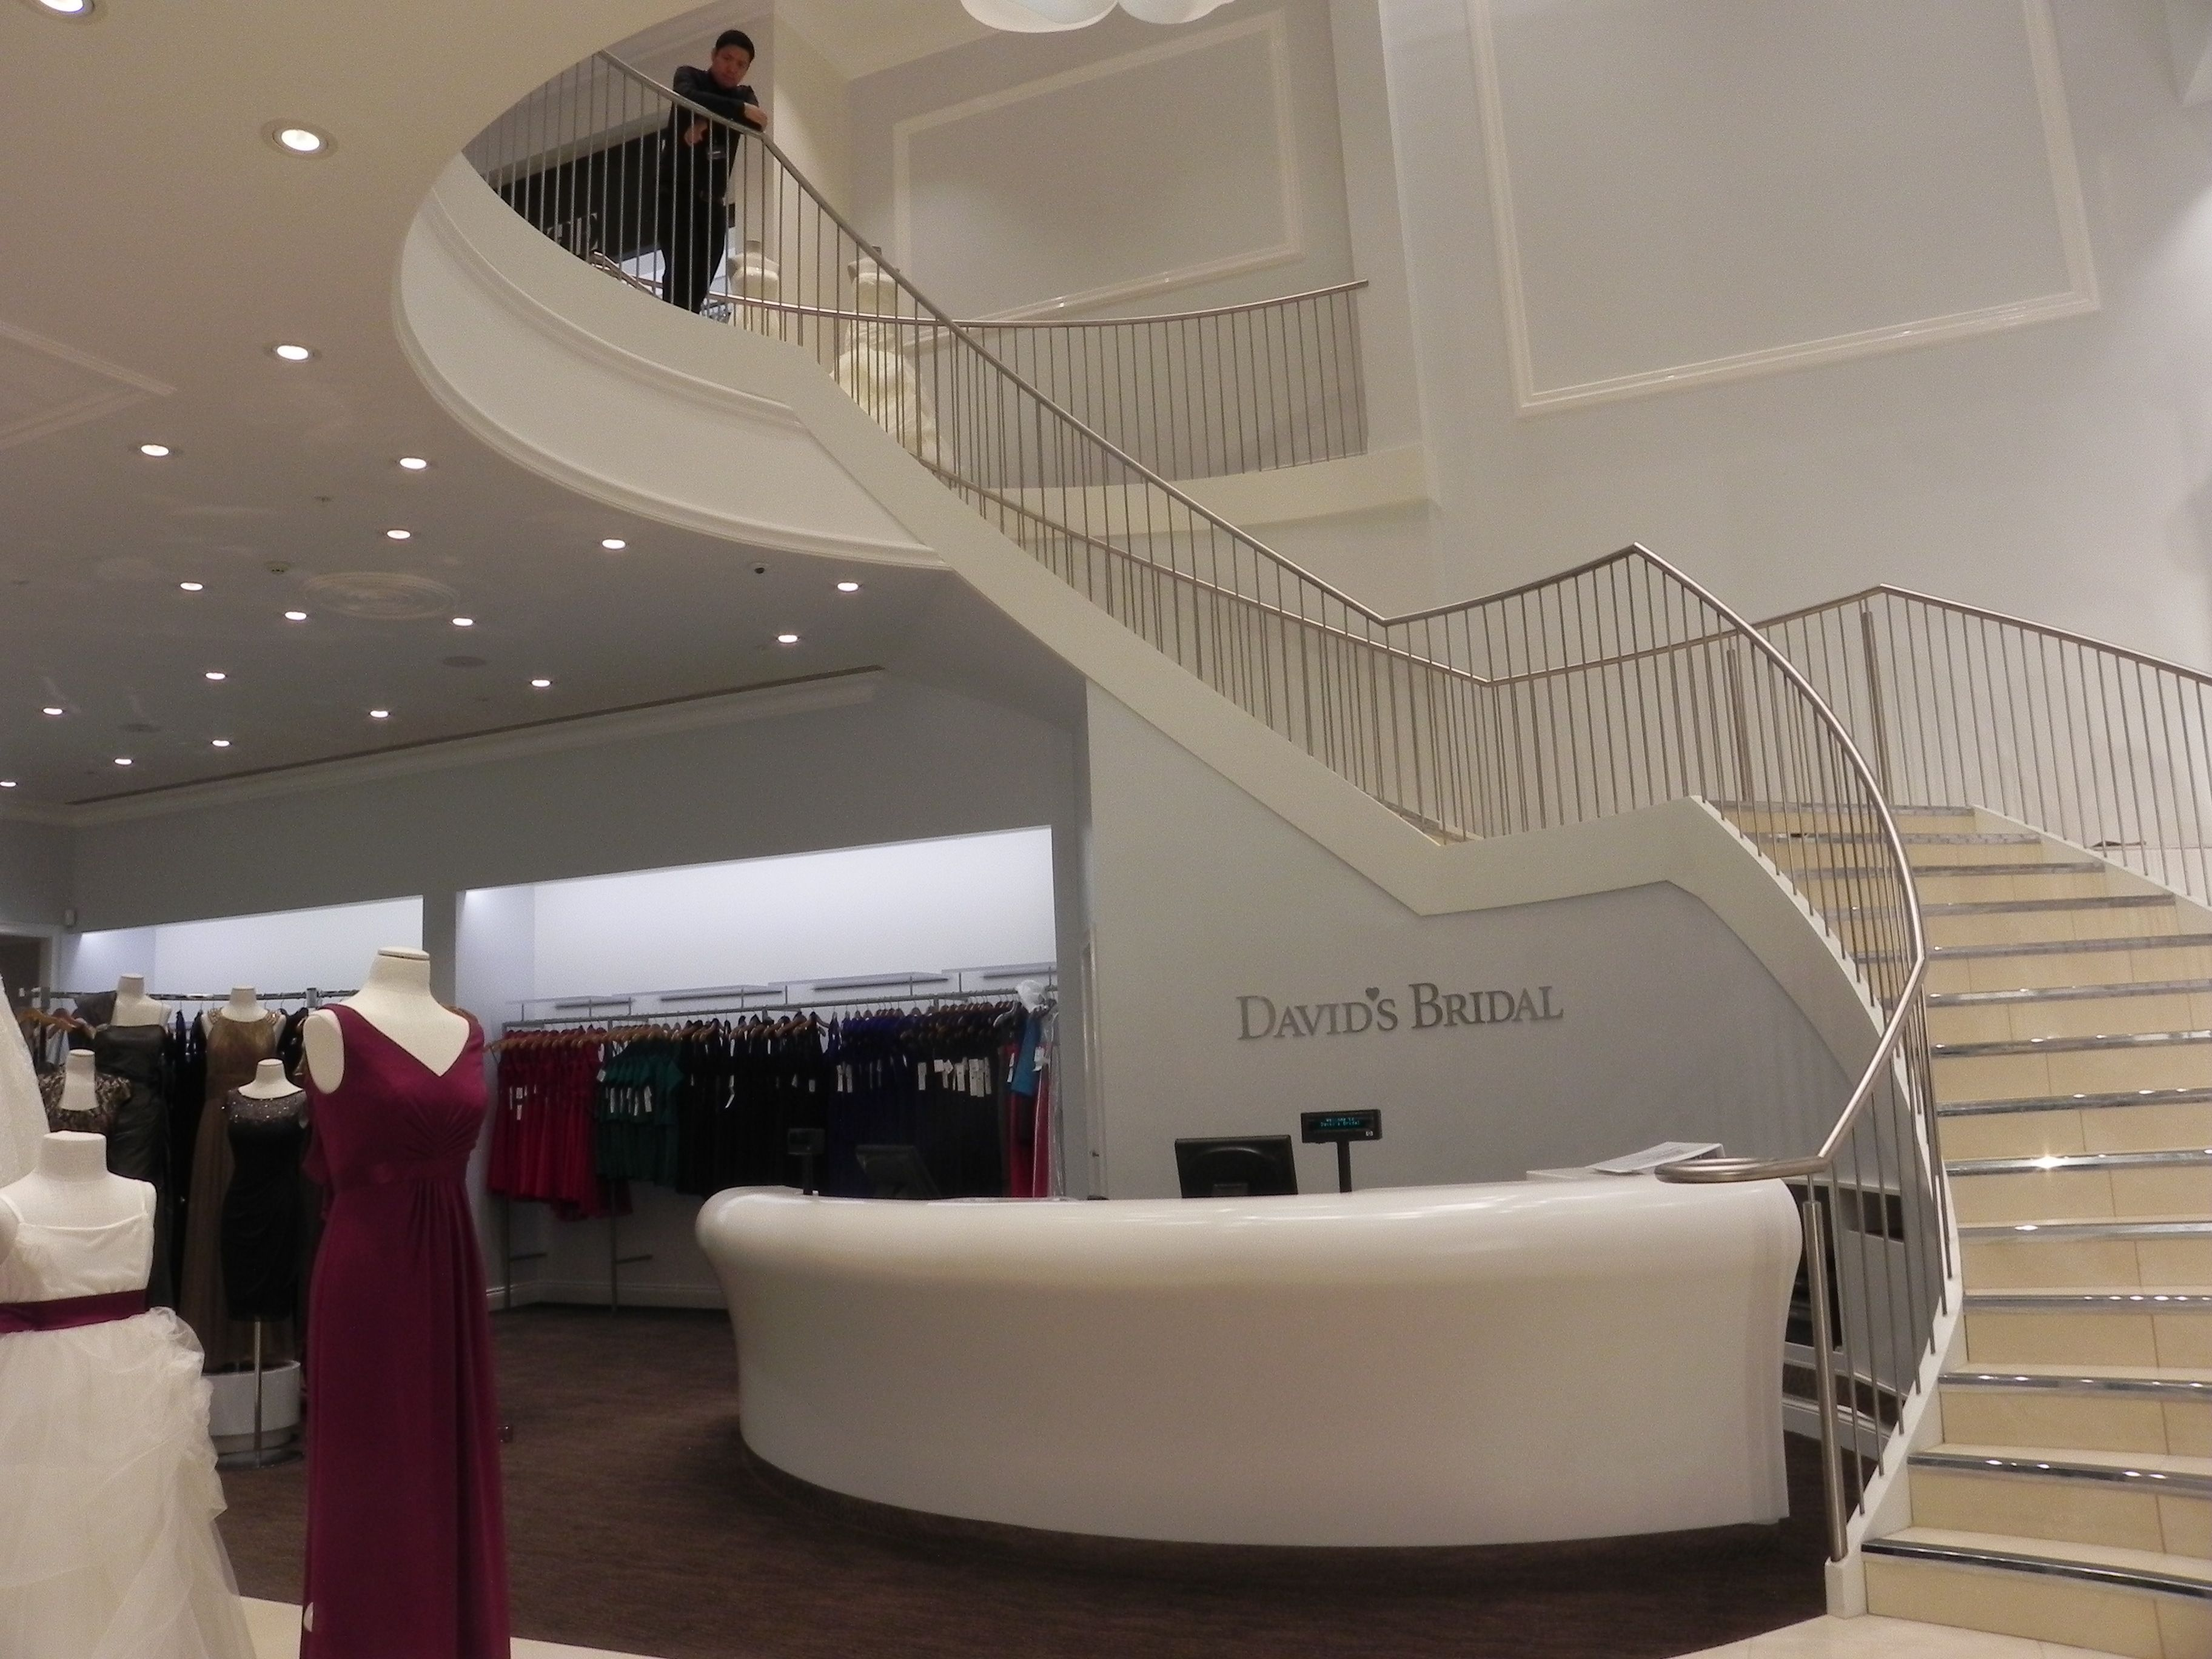 David S Bridal Expands With Launch Of First Store In United